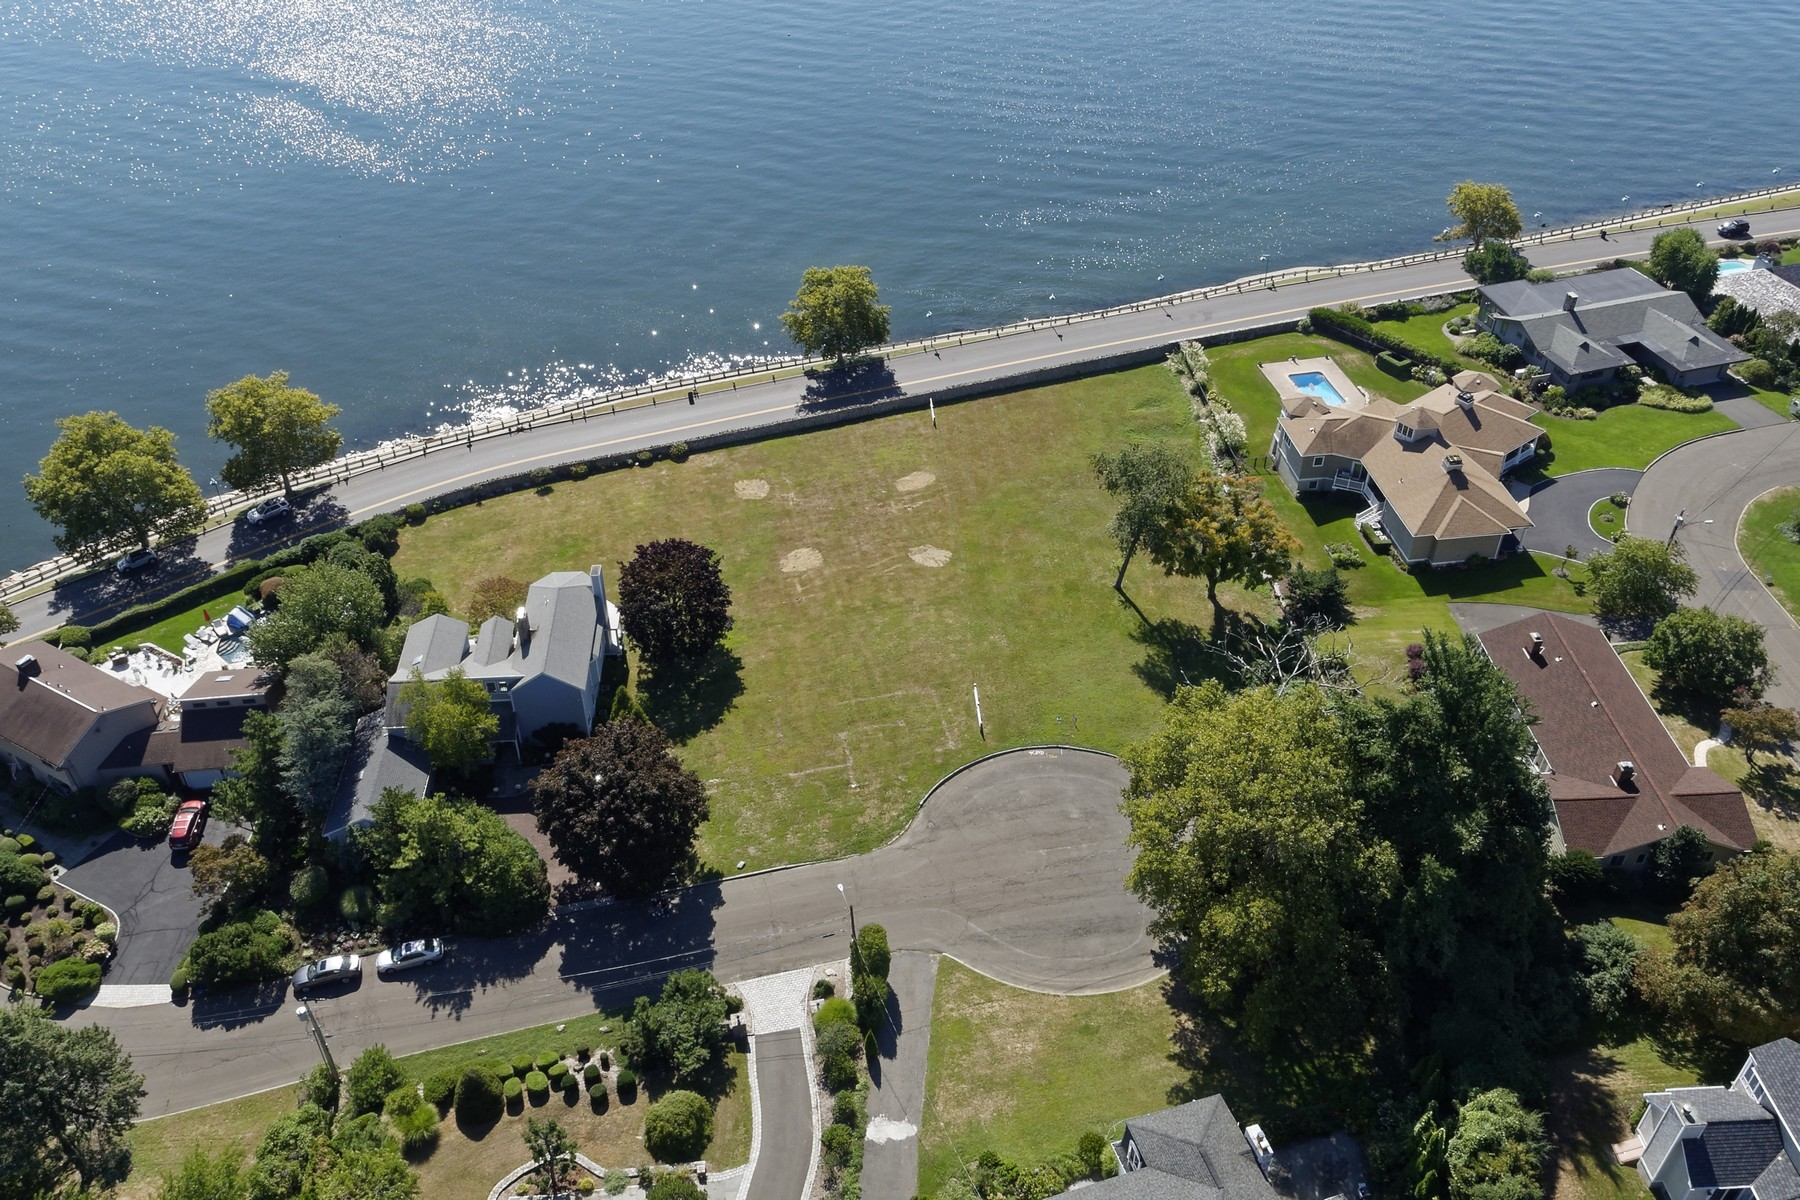 Terreno por un Venta en Amazing Opportunity to Build Your Waterfront Dream Home in St. Mary's by the Sea 69 Armitage Drive Bridgeport, Connecticut, 06605 Estados Unidos